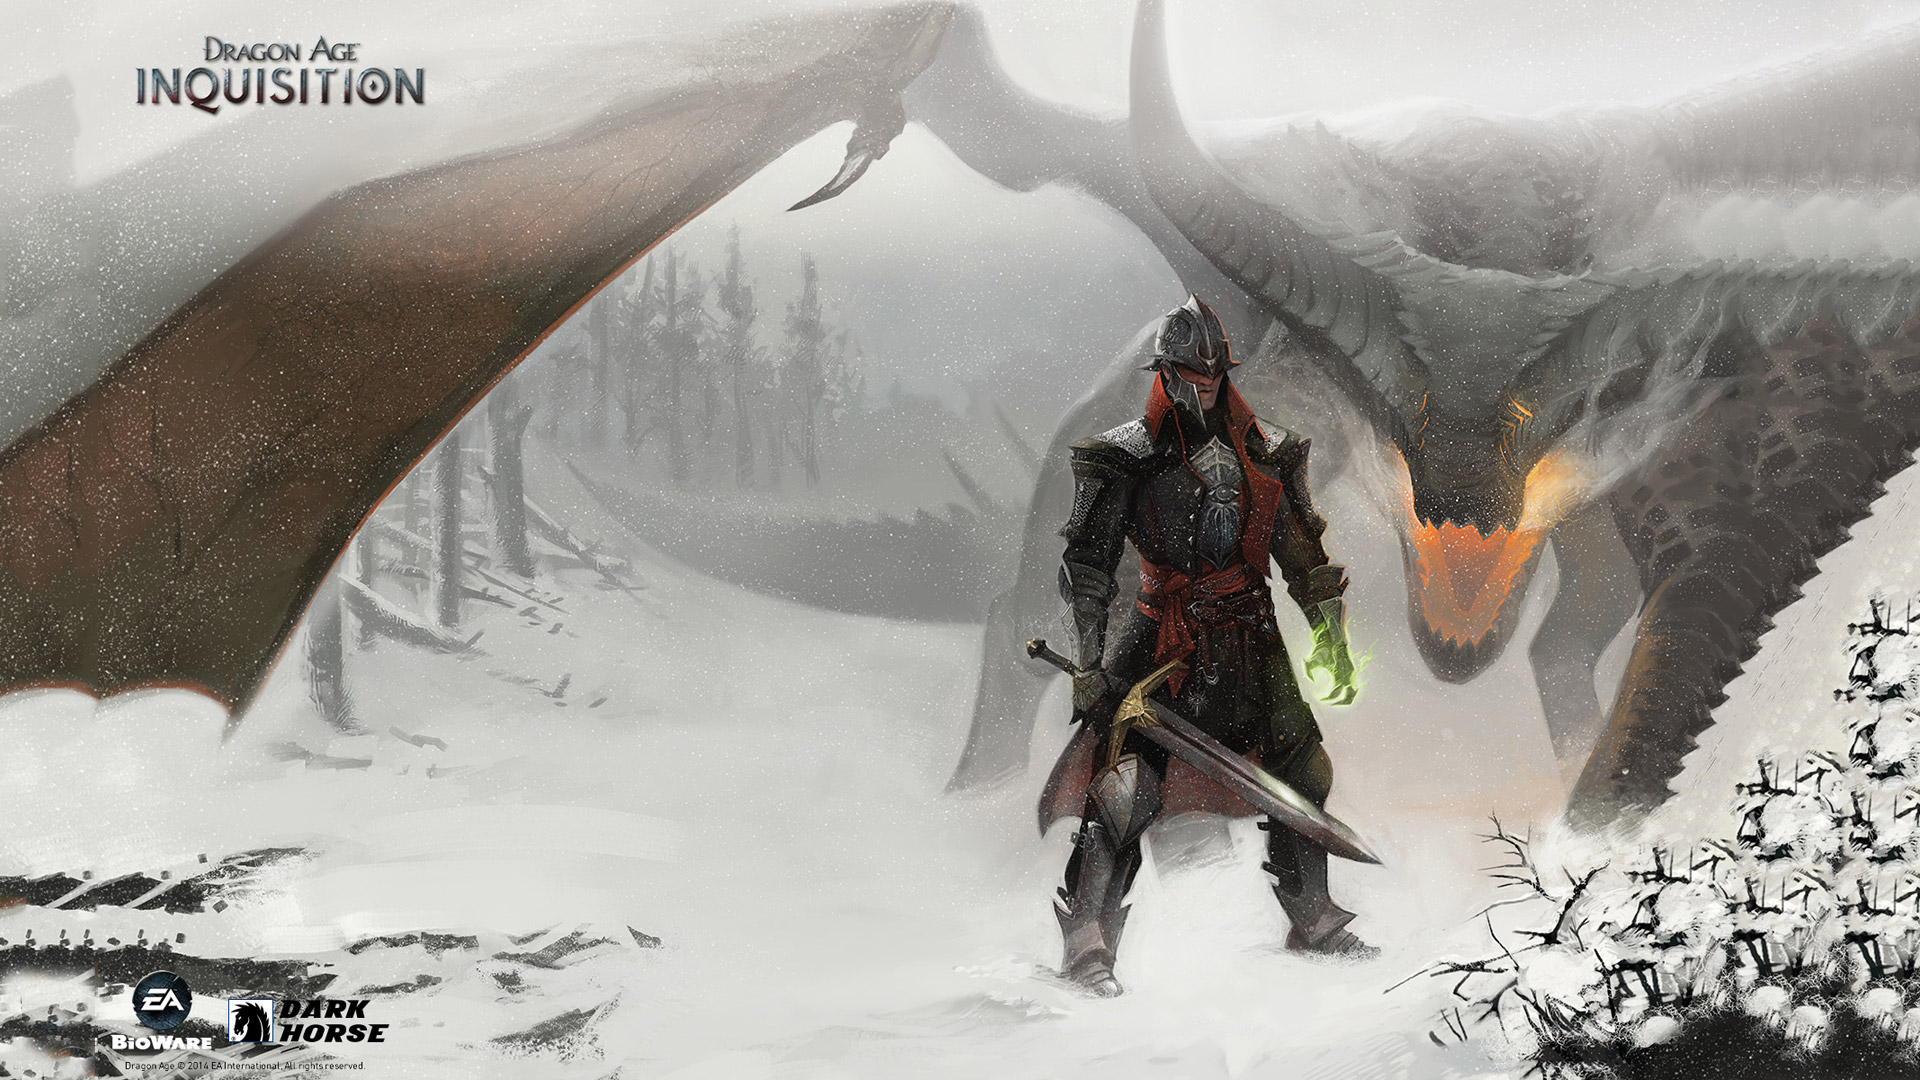 Dragon Age: Inquisition Wallpaper in 1920x1080